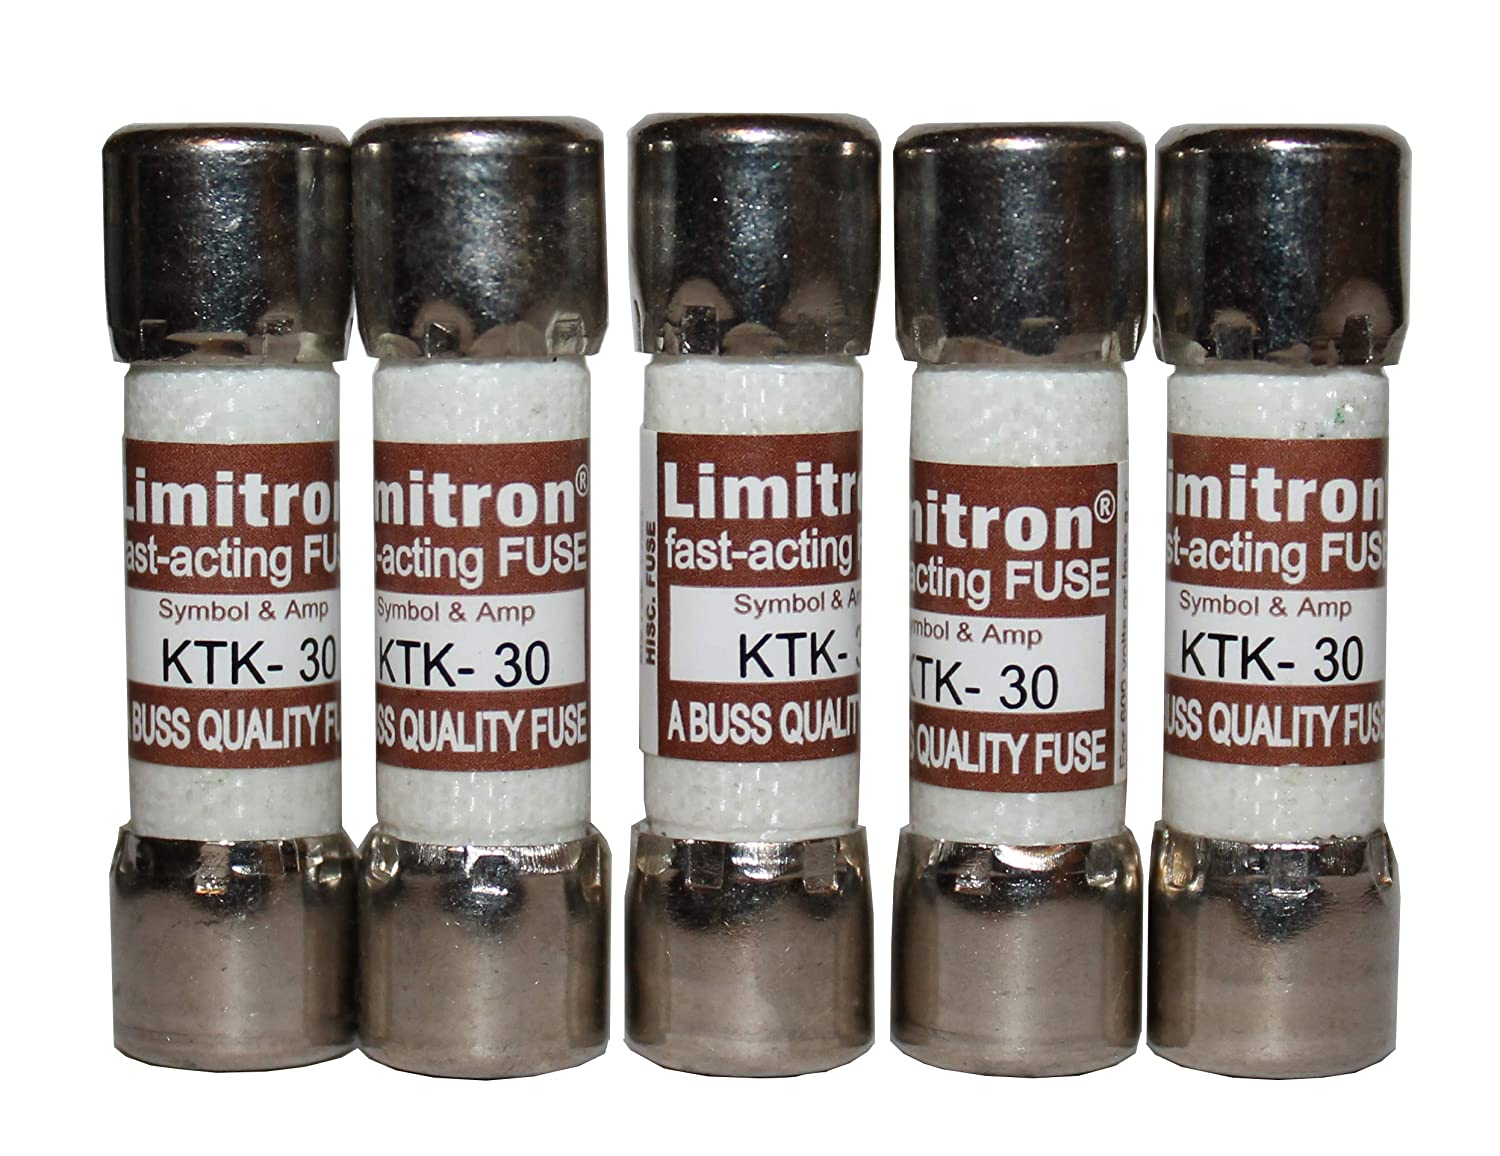 KTK-30 Fast Acting Limitron Fuse 600 VAC 30A (5 Pack)